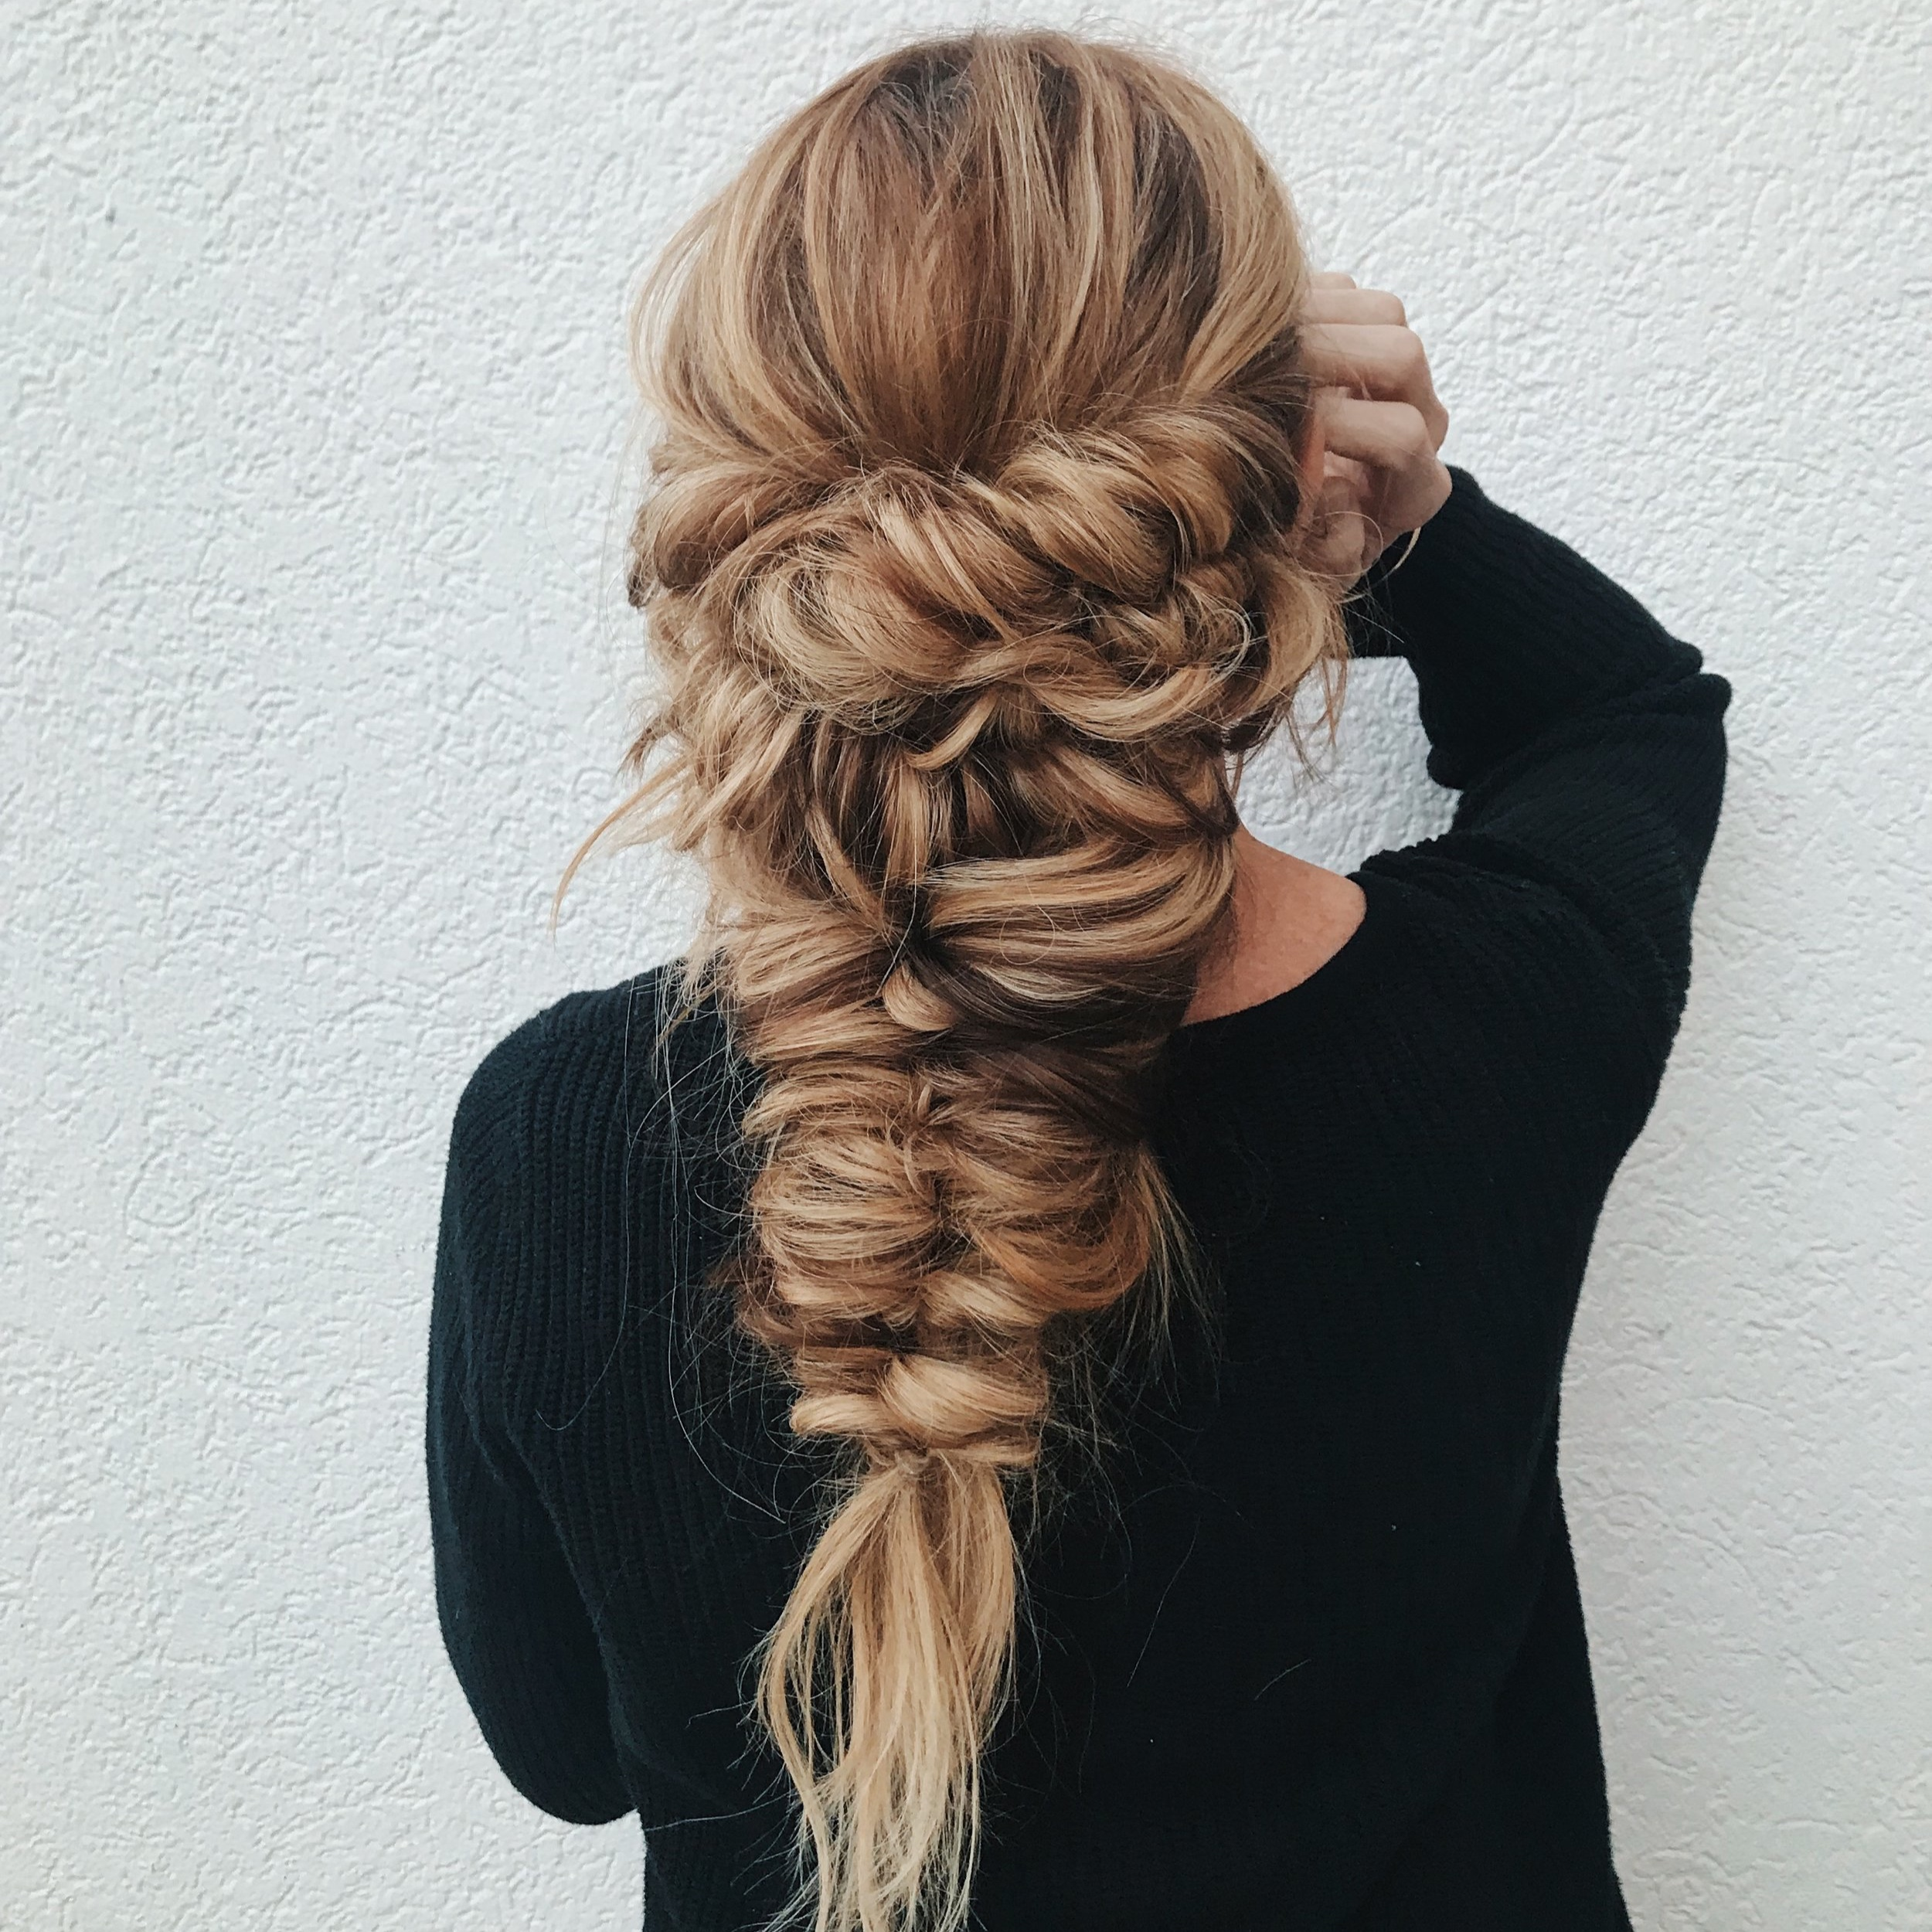 Everyday-Shayla-Jay-mermaid-braid.JPG